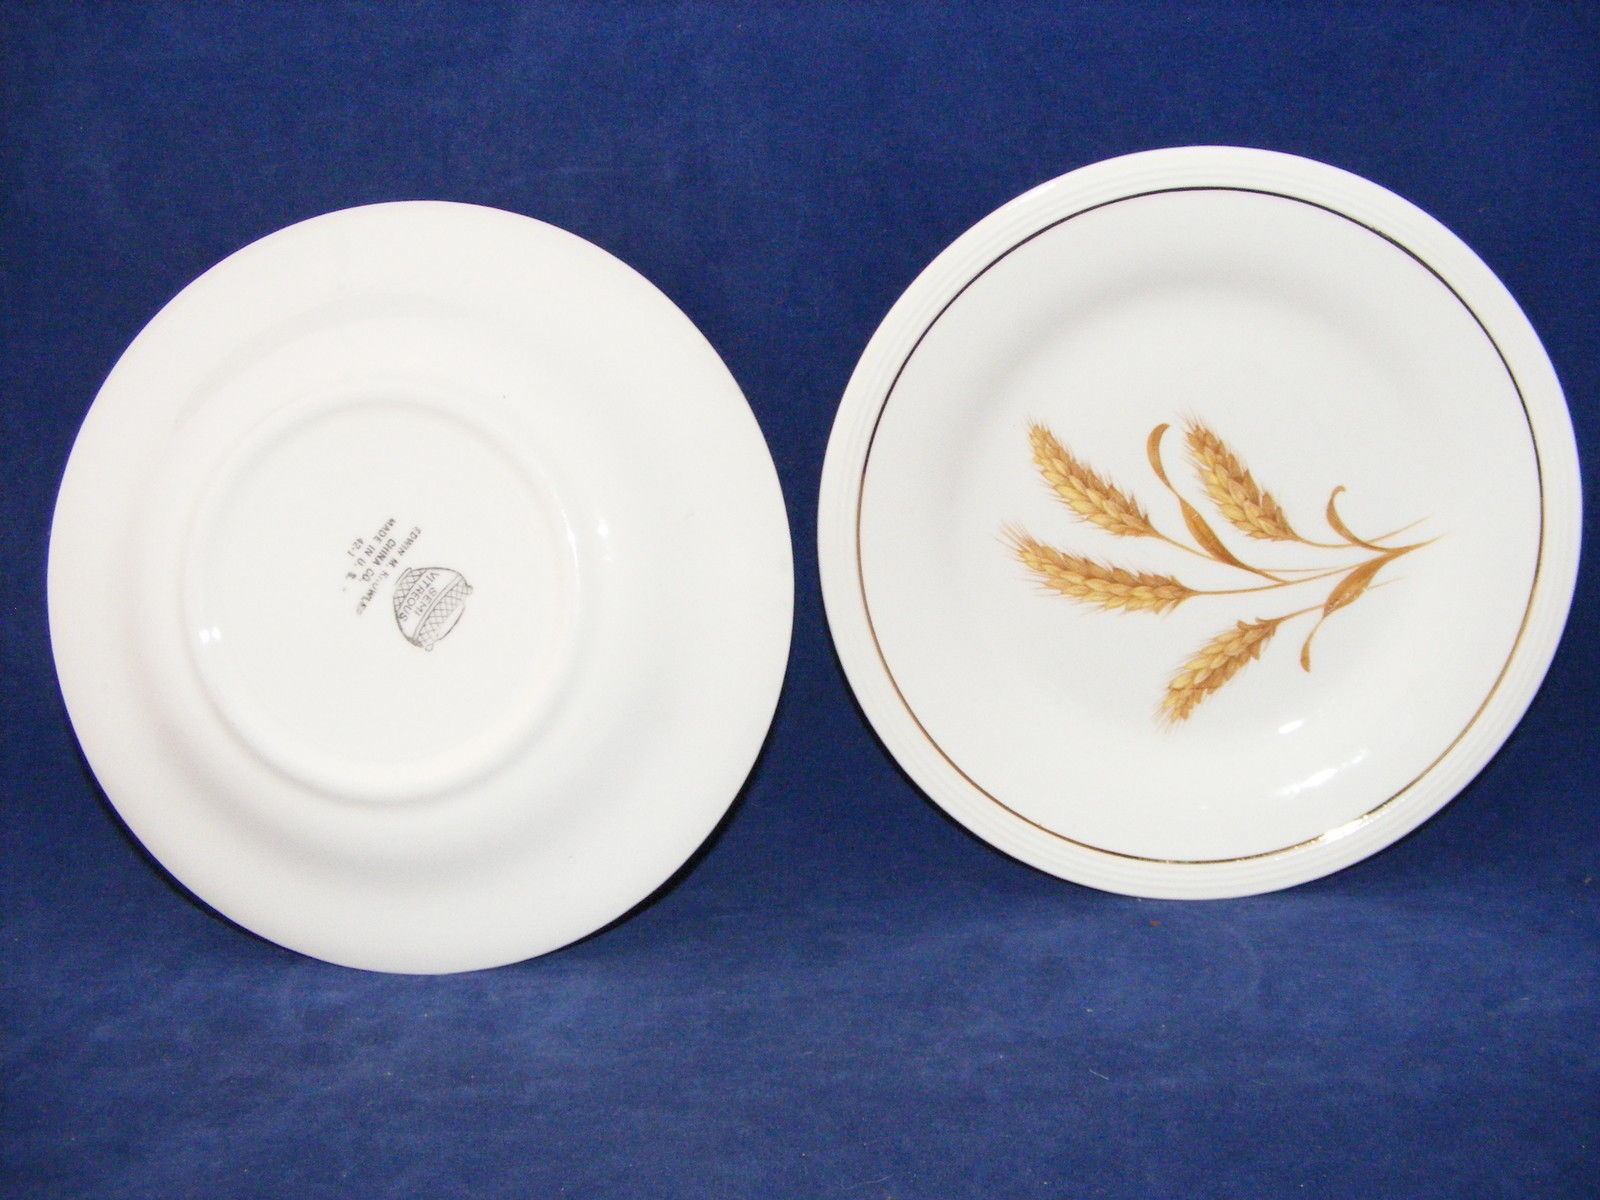 ... 2 Knowles Gold Wheat 6 3/8  Bread Plates Semi Vitreous China & 2 Knowles Gold Wheat 6 3/8